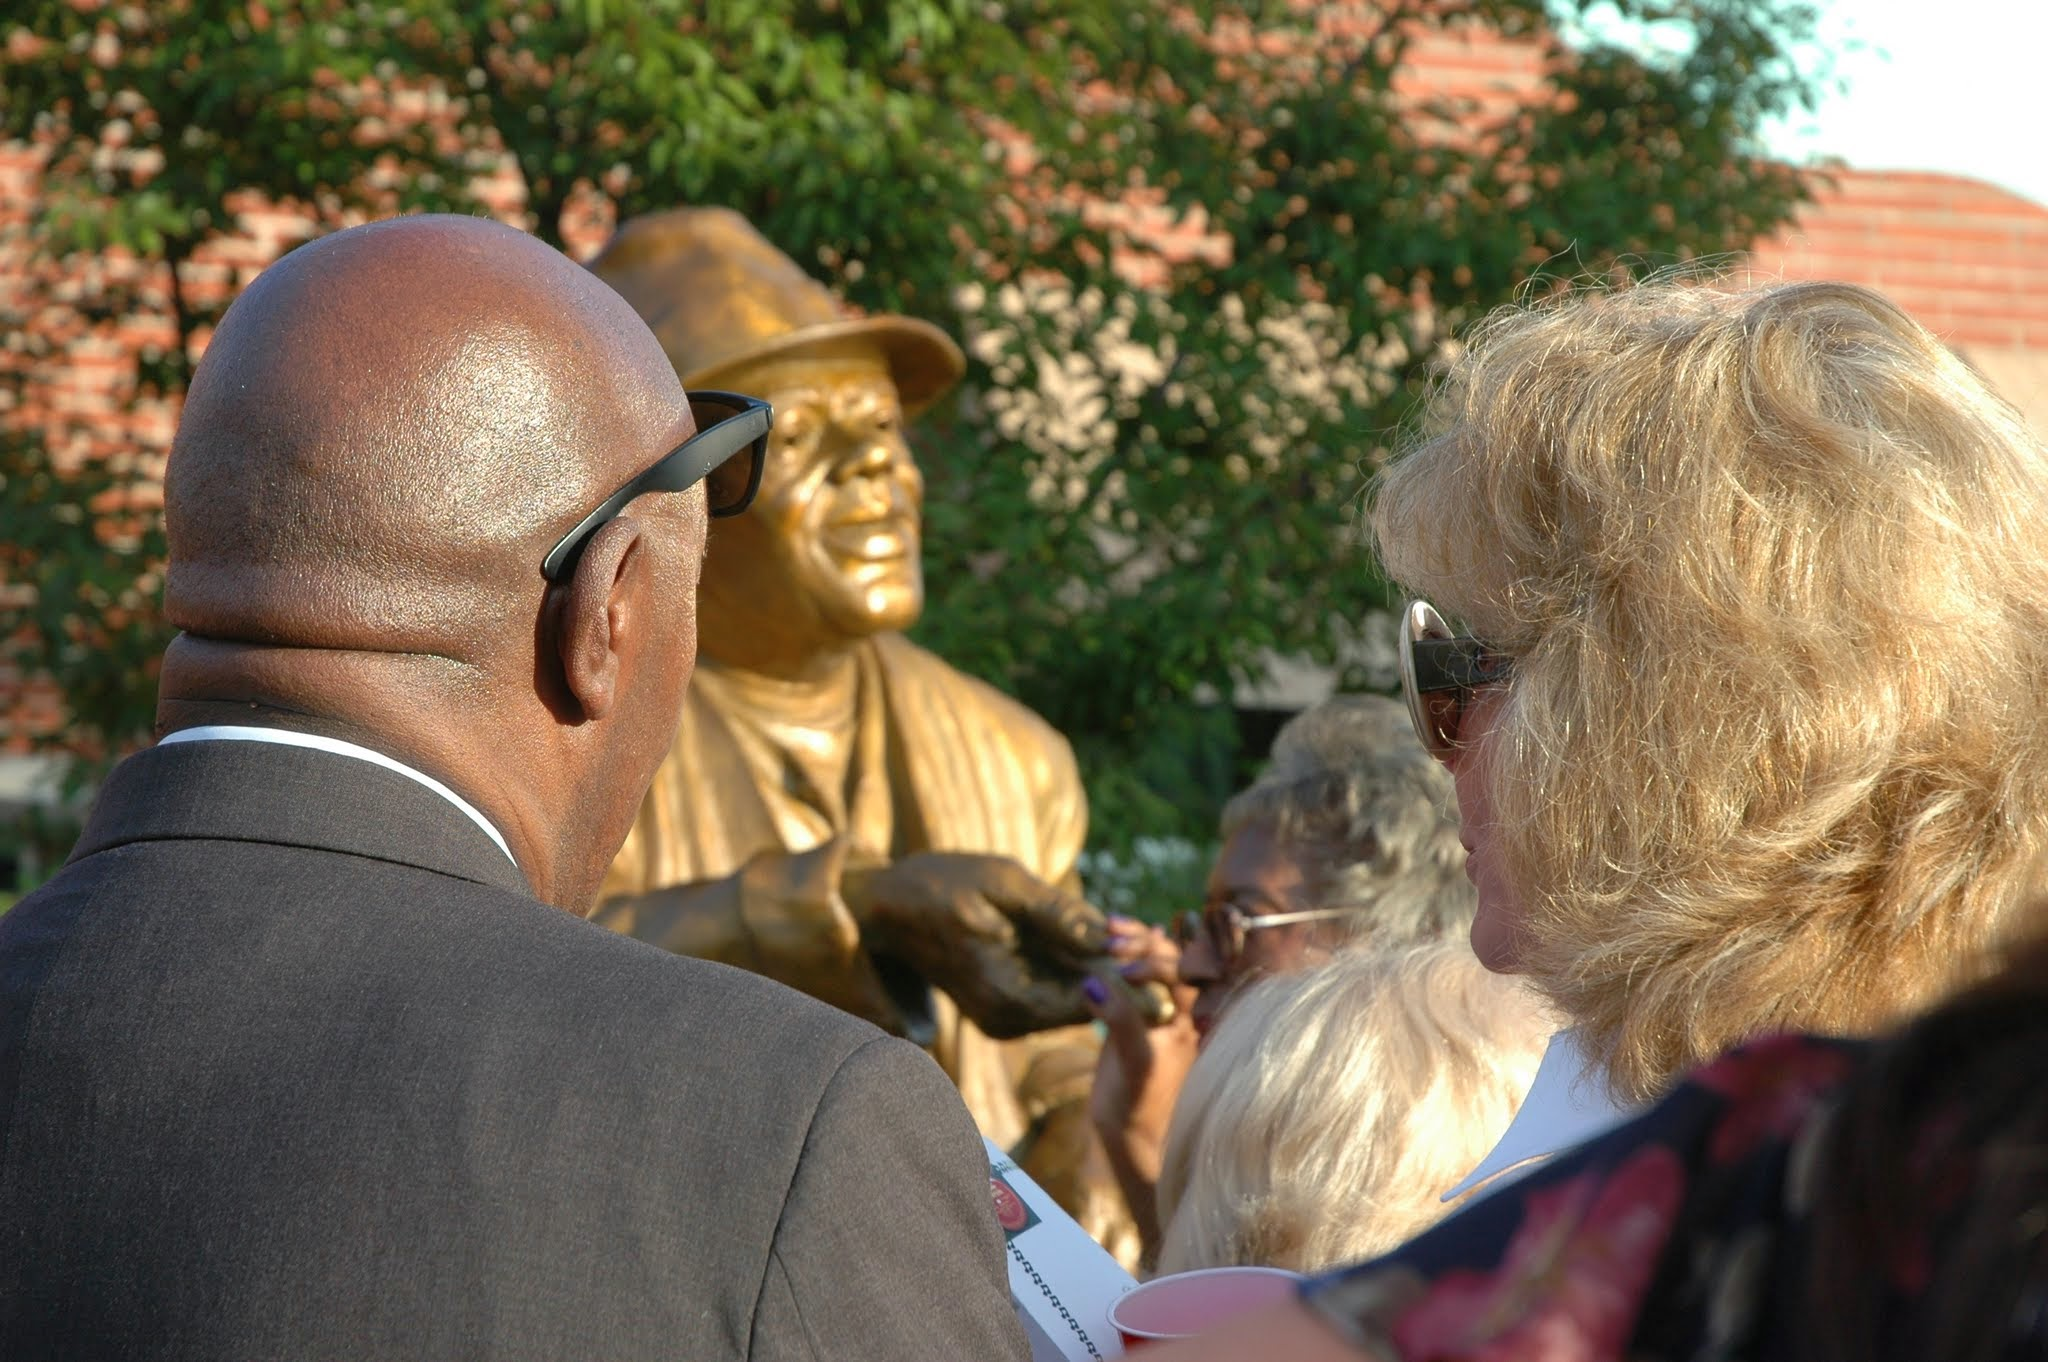 Darla Moore viewing the Huey Cooper sculpture Sept. 10, 2014 at the unveiling